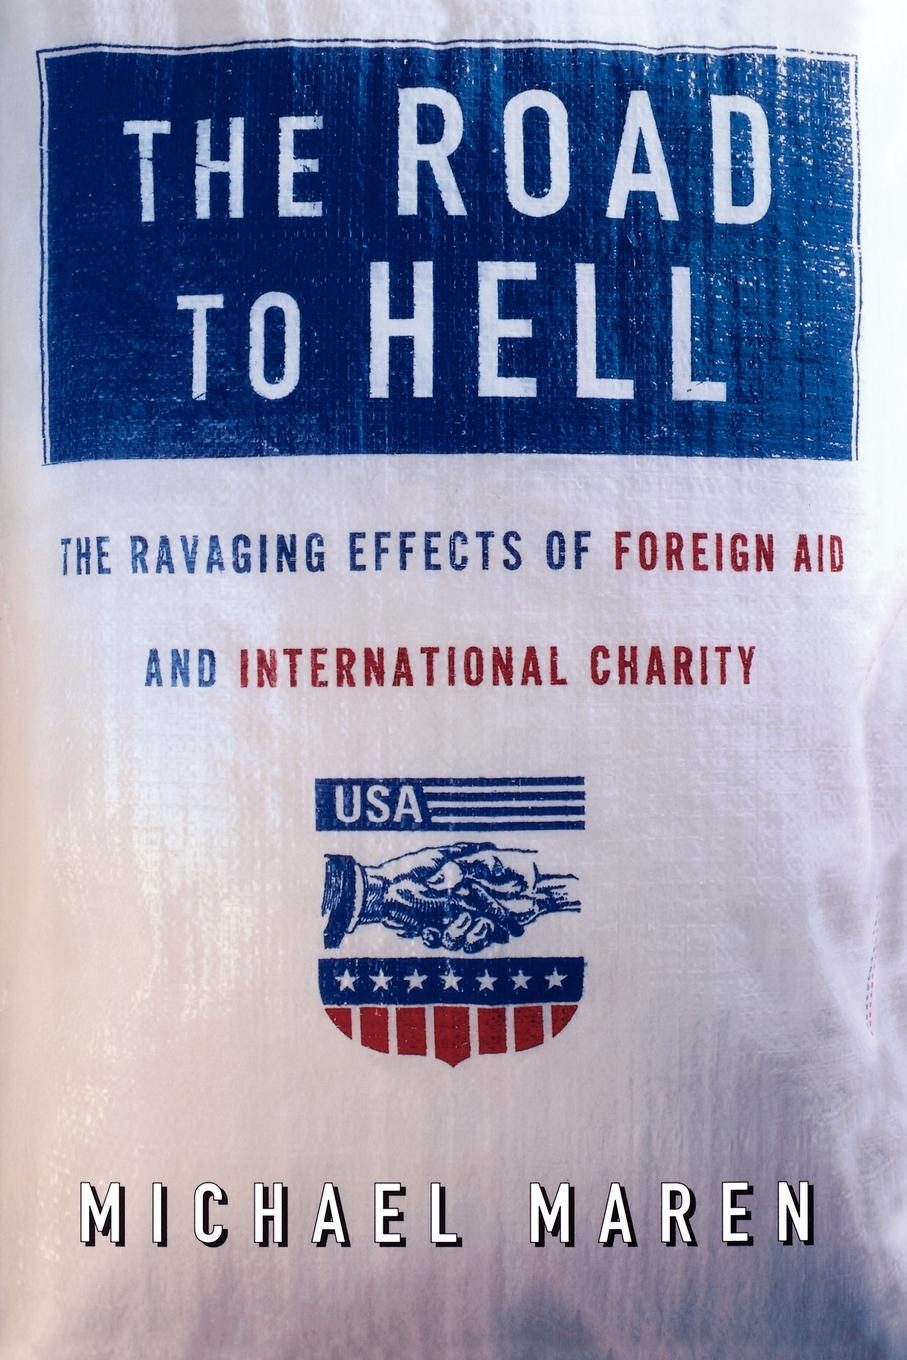 Michael Maren The Road to Hell. The Ravaging Effects of Foreign Aid and International Charity the rationale behind foreign aid